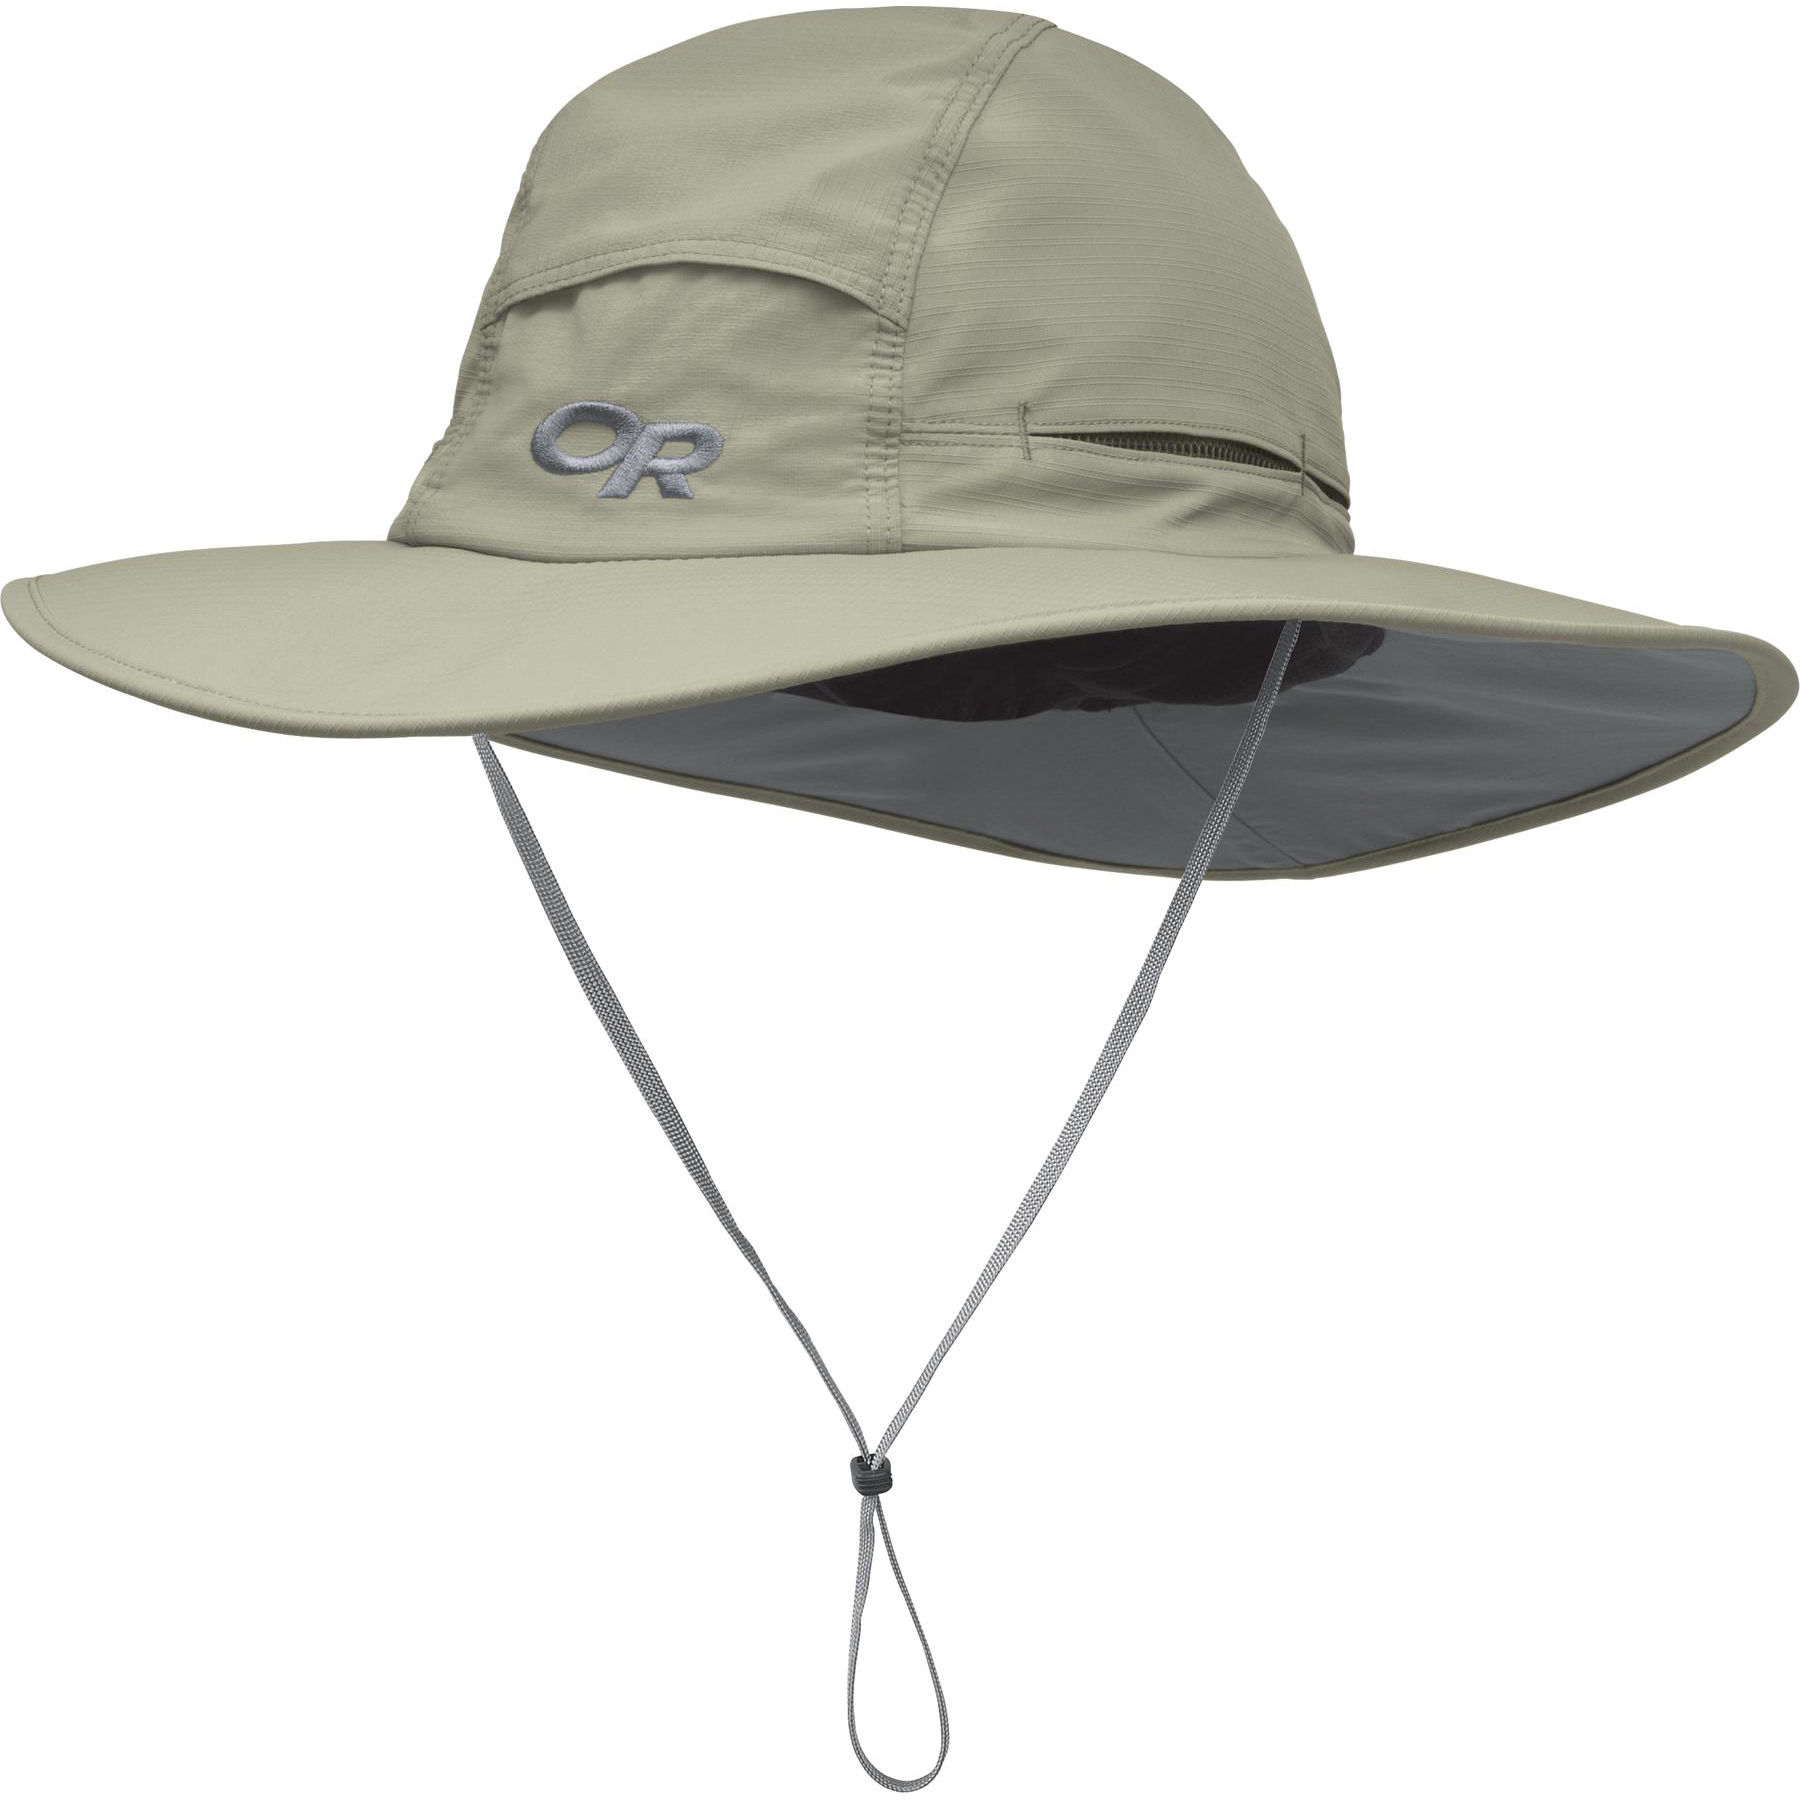 c424325774f Outdoor Research Sombriolet Sun Hat - Unisex